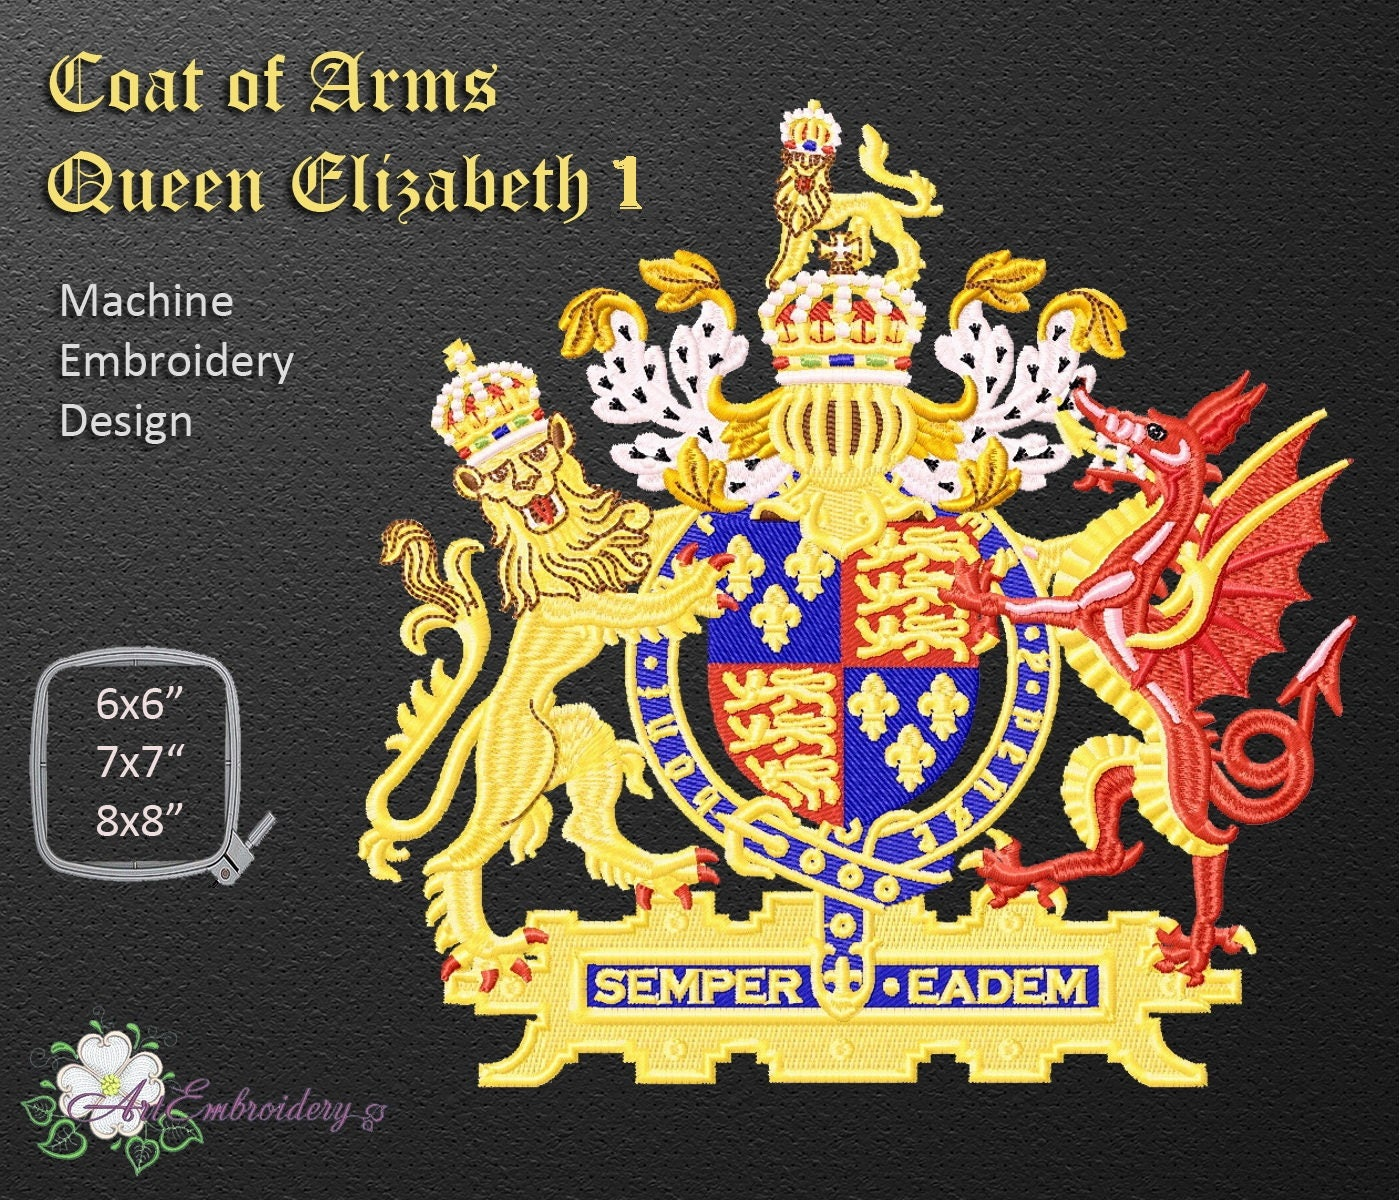 Coat Of Arms Queen Elizabeth I Official Coat Of Arms Of The Etsy